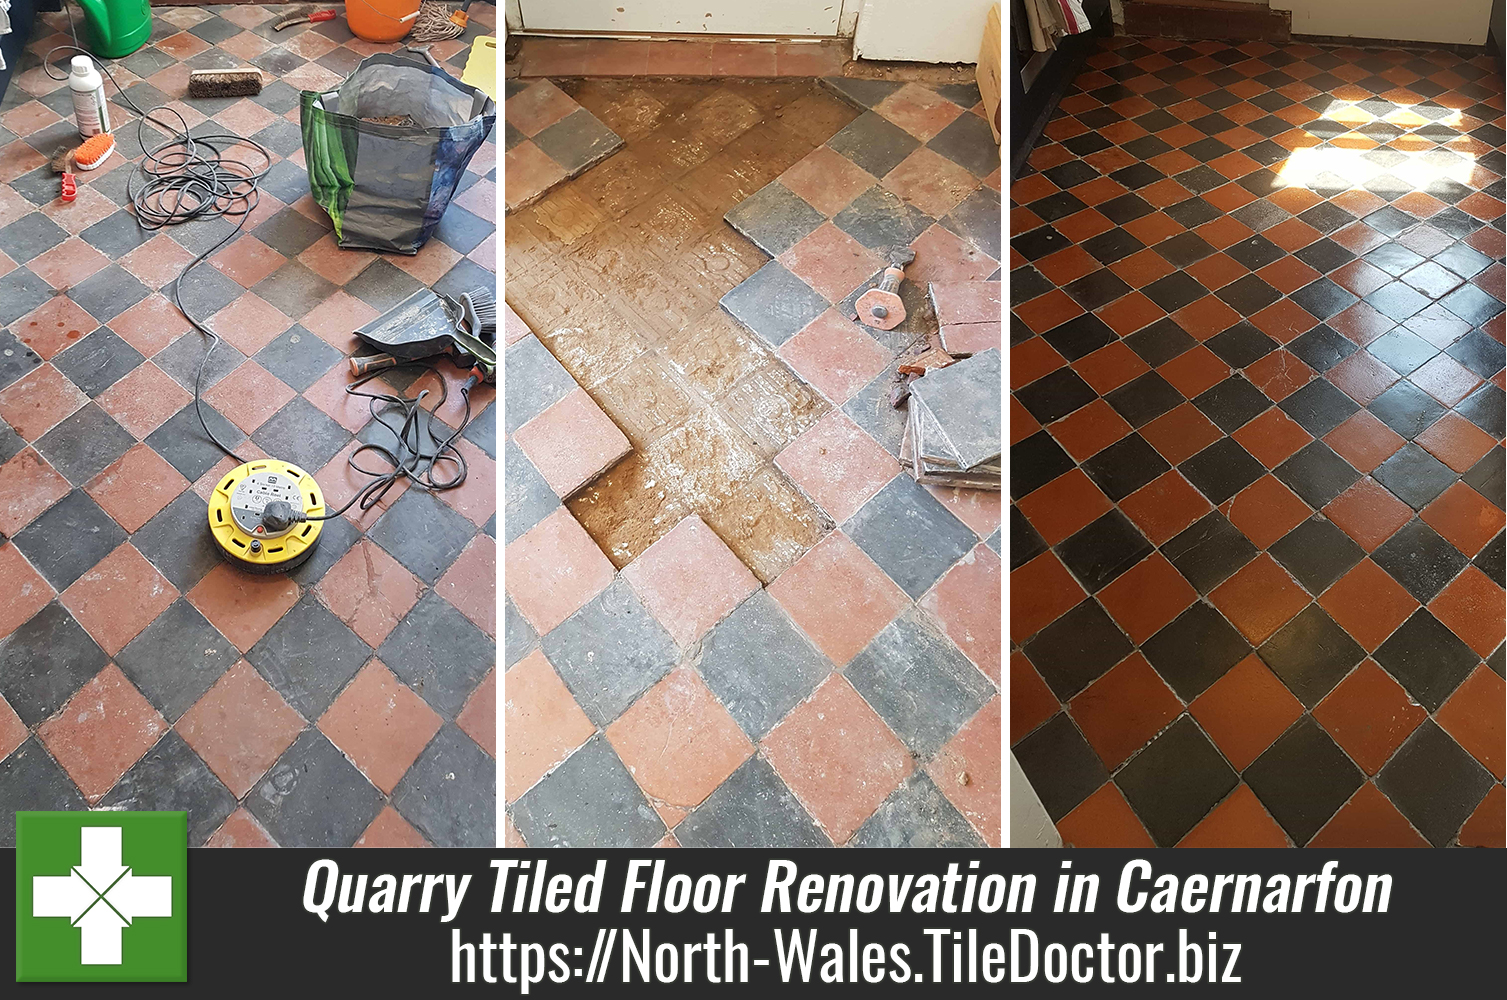 Quarry Tiled Kitchen Floor Tiles Before After Renovation Caernarfon